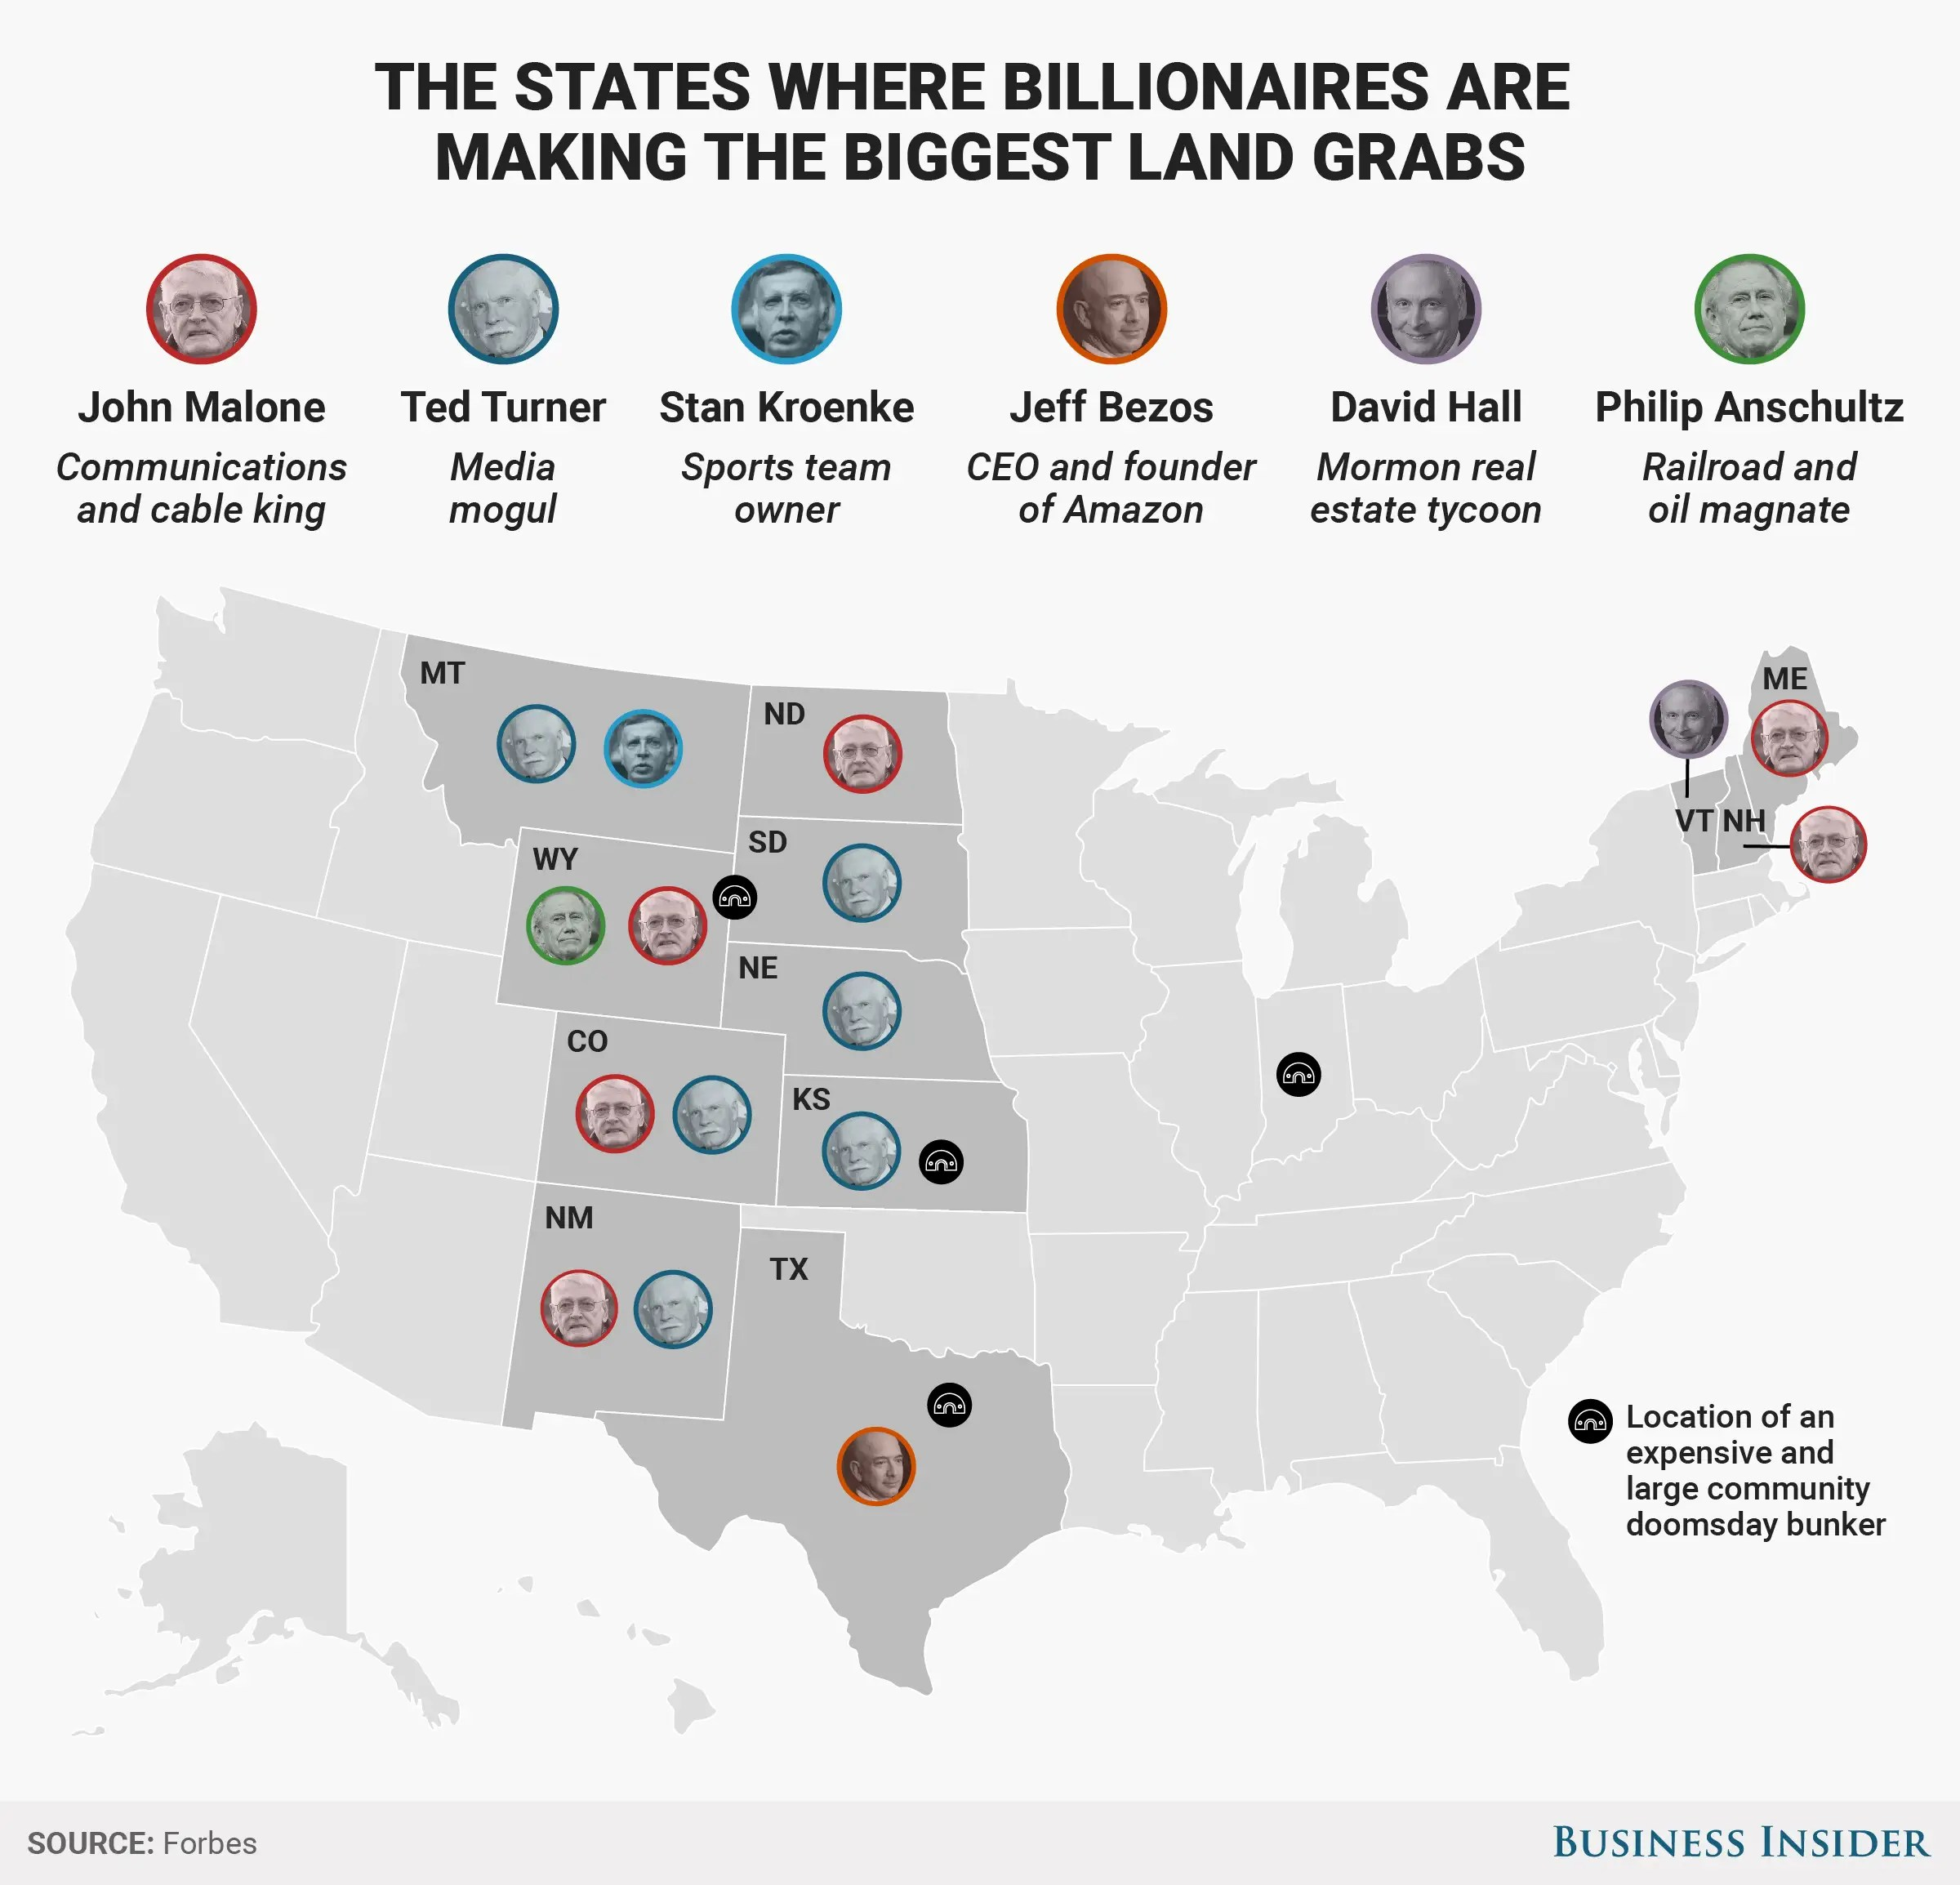 BI Graphics_Billionaires land grabs